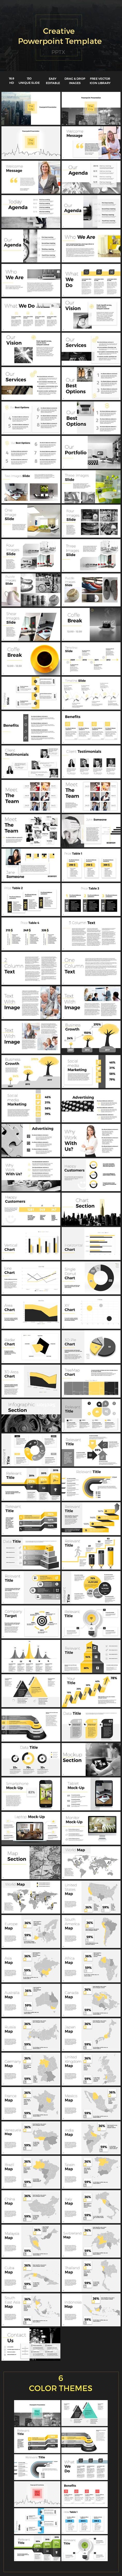 best ideas about powerpoint format interesting the city creative powerpoint presentation template